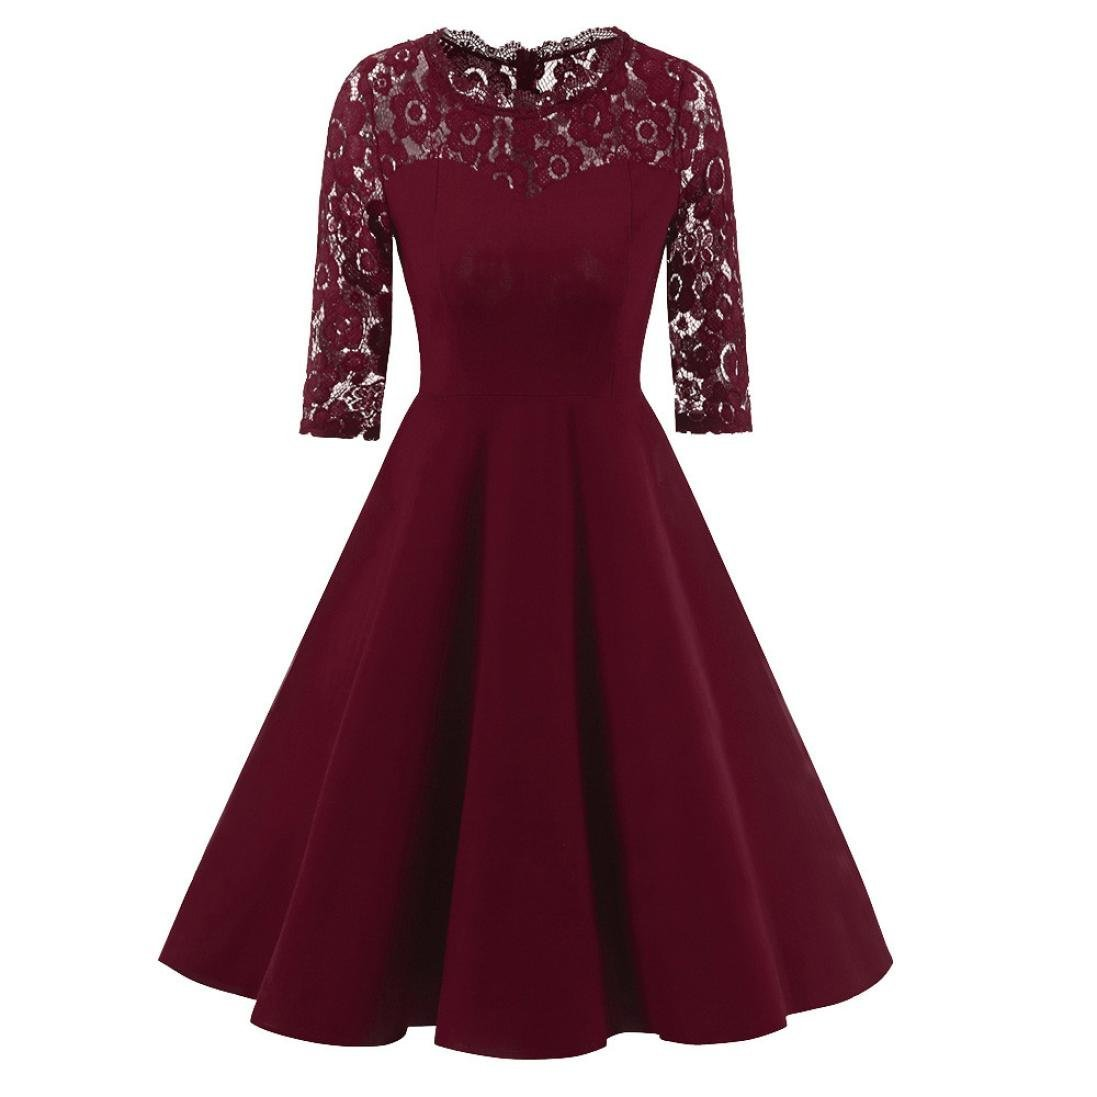 Women Dress Daoroka Ladies Sexy Lace Vintage Lace Half Sleeve Wedding Cocktail Evening Party A Line Swing Skirt Elegant Retro Fit and Flare Casual Fashion Cute Gift Fit Sundress (2XL, Wine)